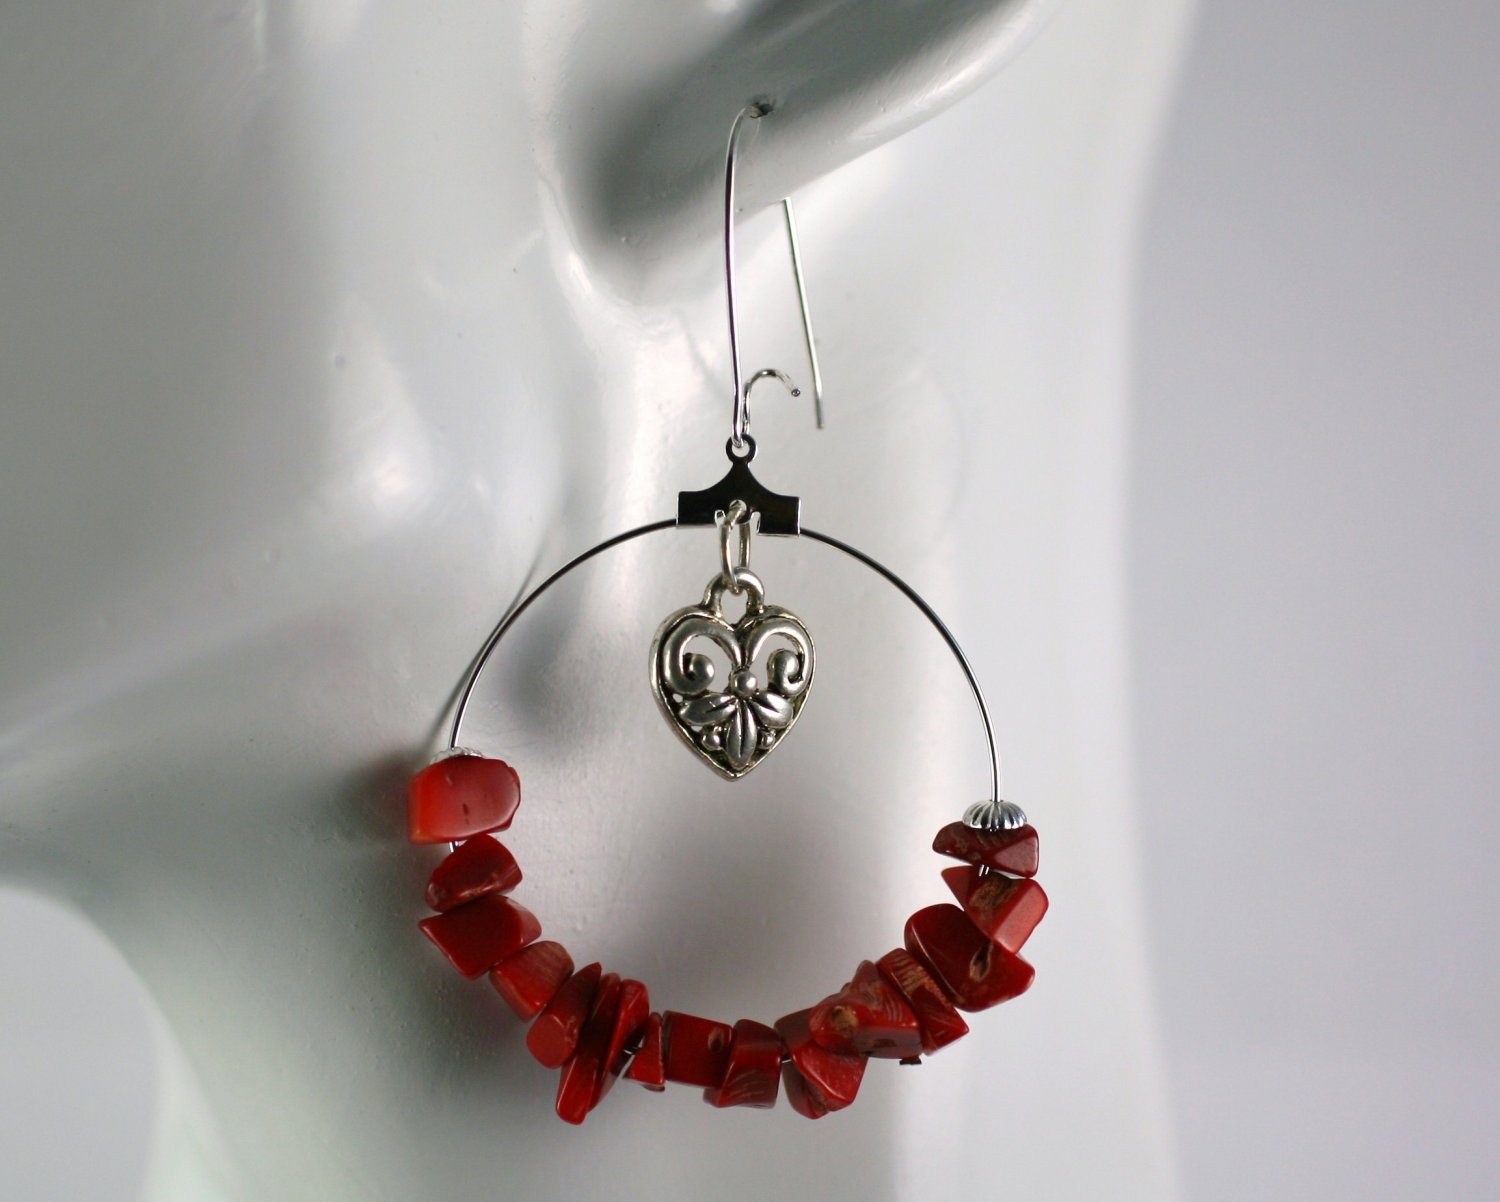 Silver Hoop Earrings with Red Coral Chip Beads 1.5 in.  Handcrafted Jewelry